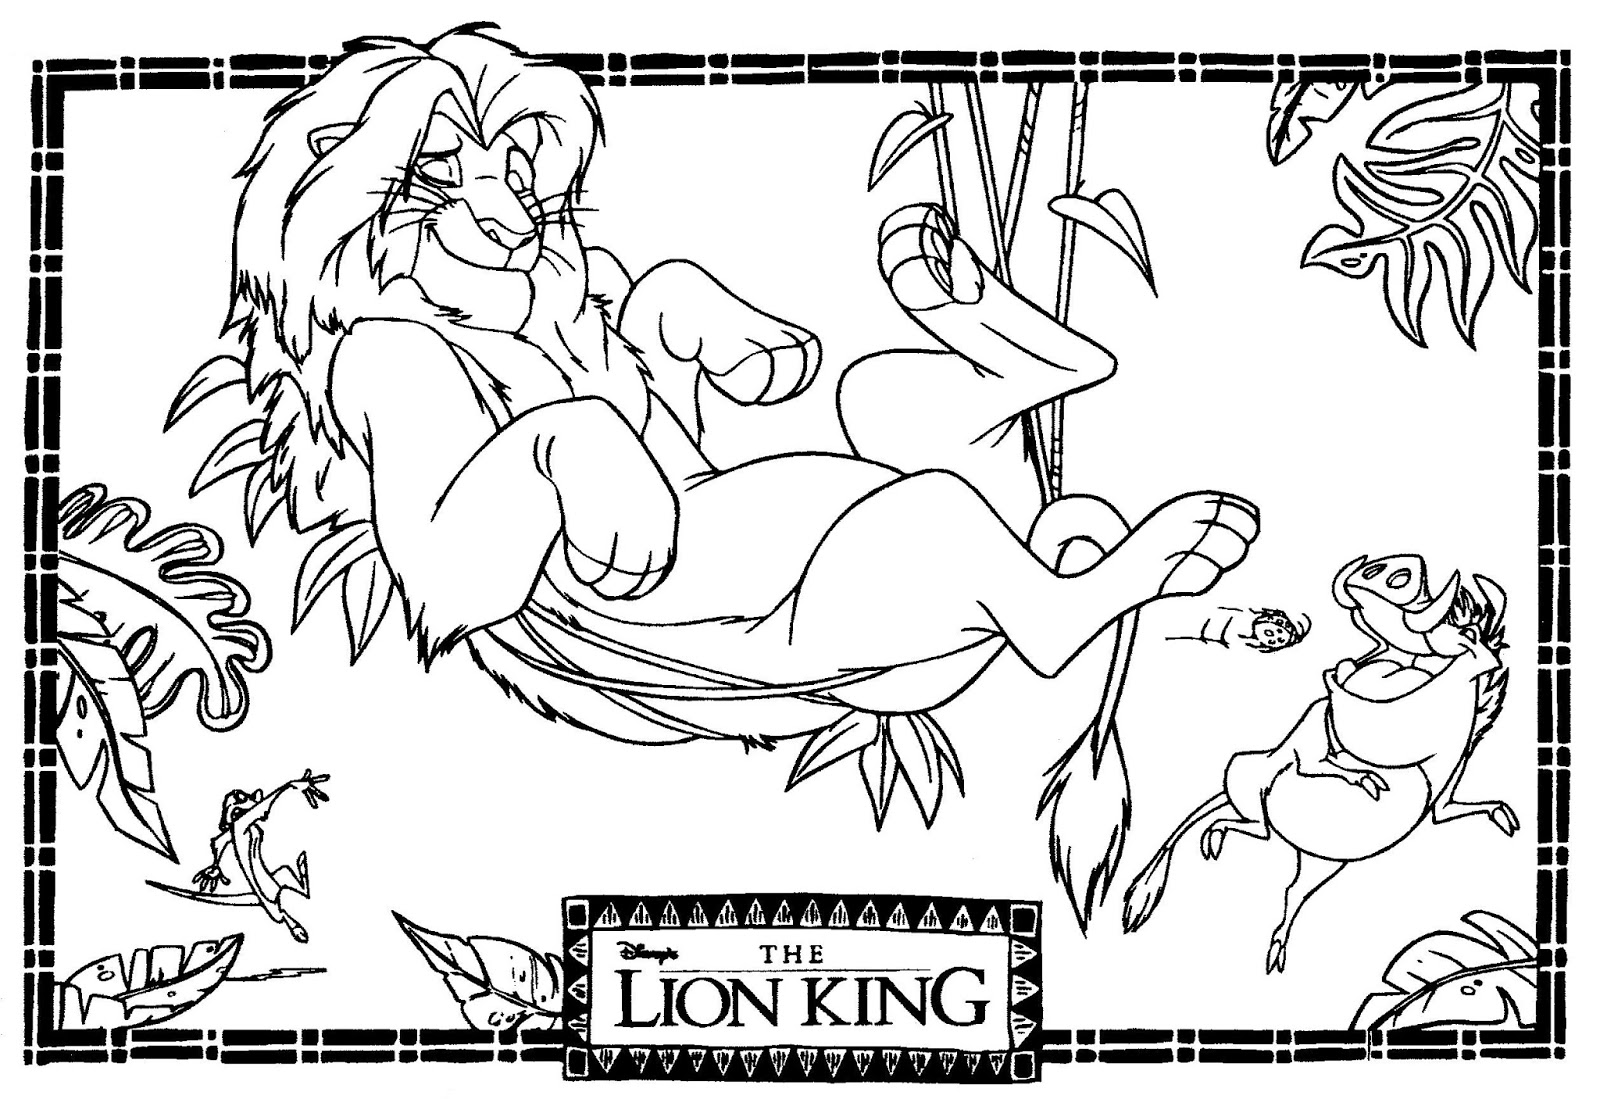 coloring pictures of lion king mostly paper dolls too the lion king movie coloring contest king lion coloring pictures of